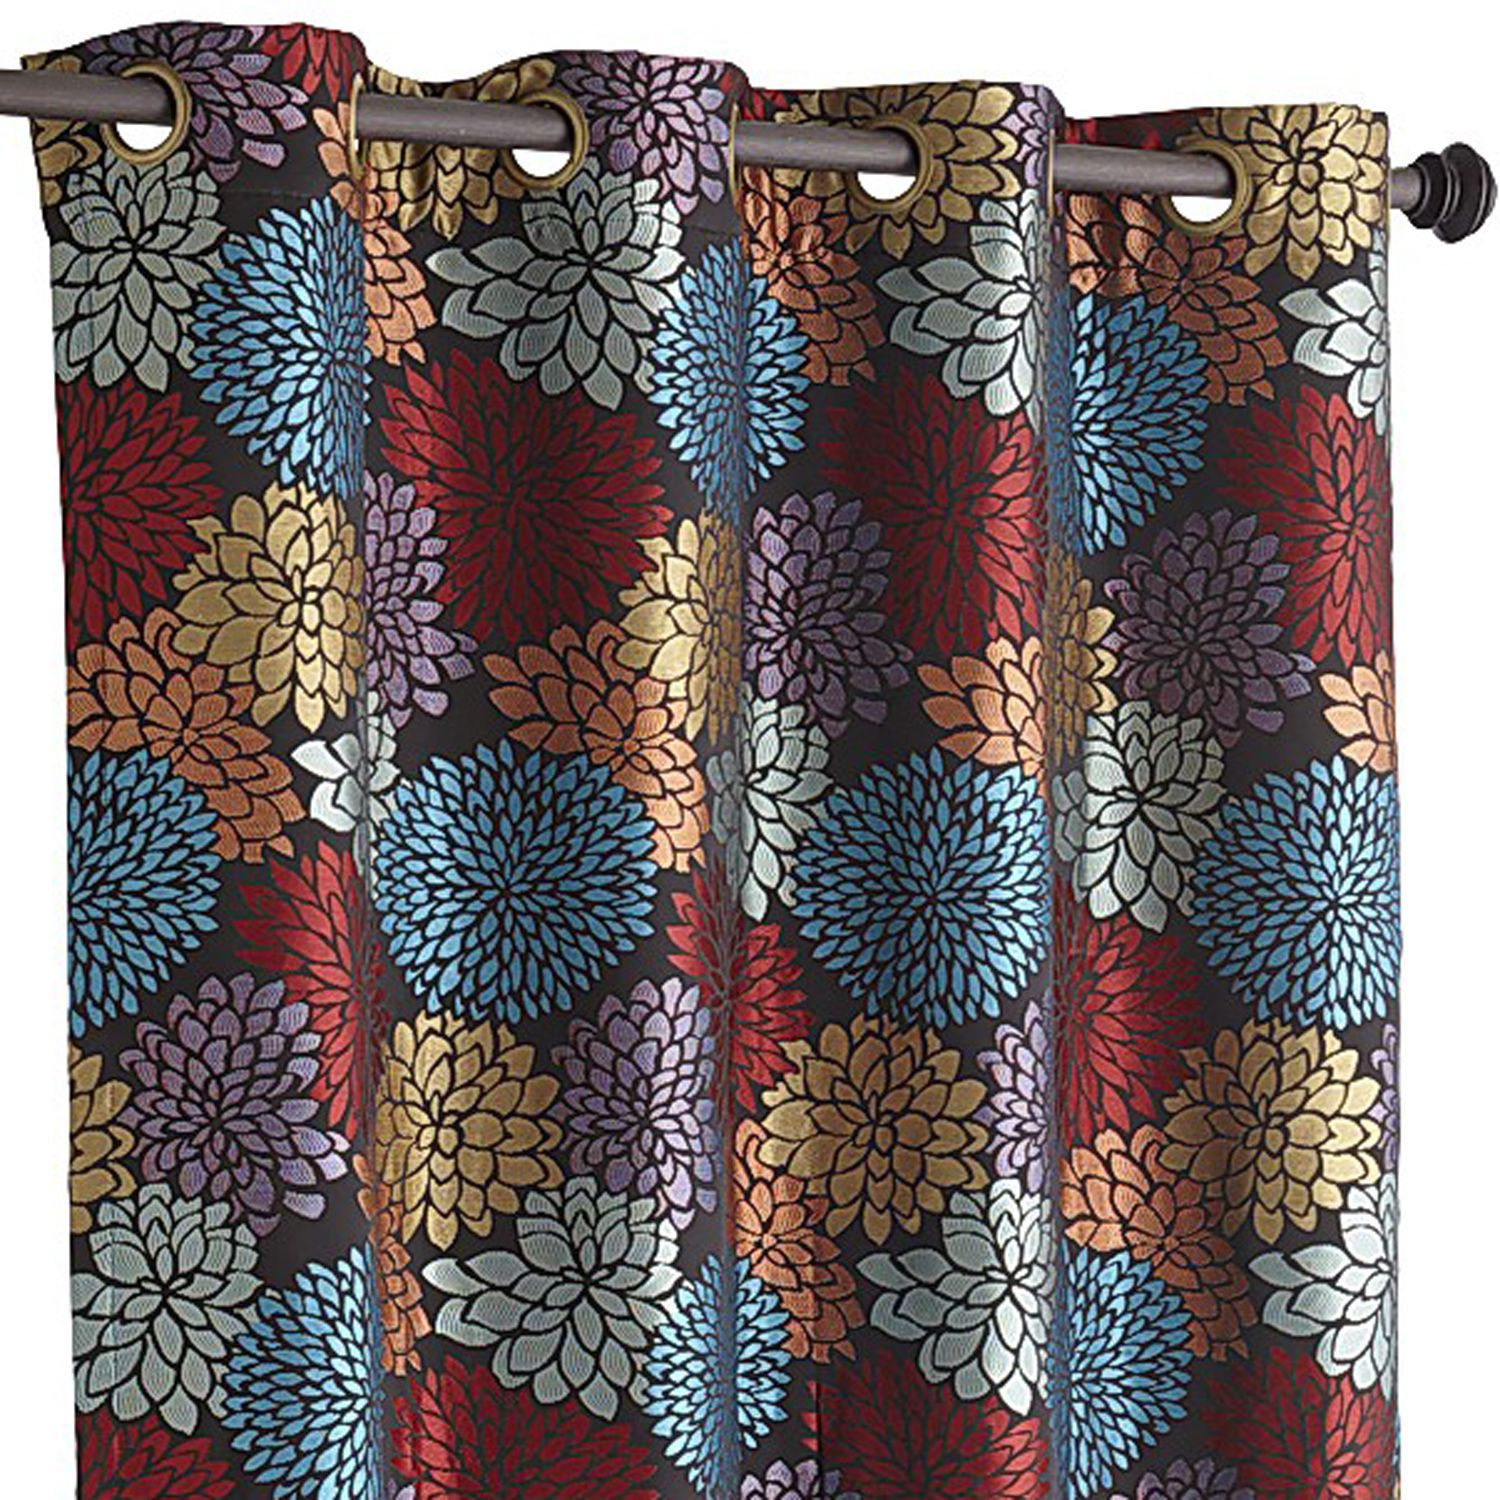 Bloom Garden Curtain - Black 84""